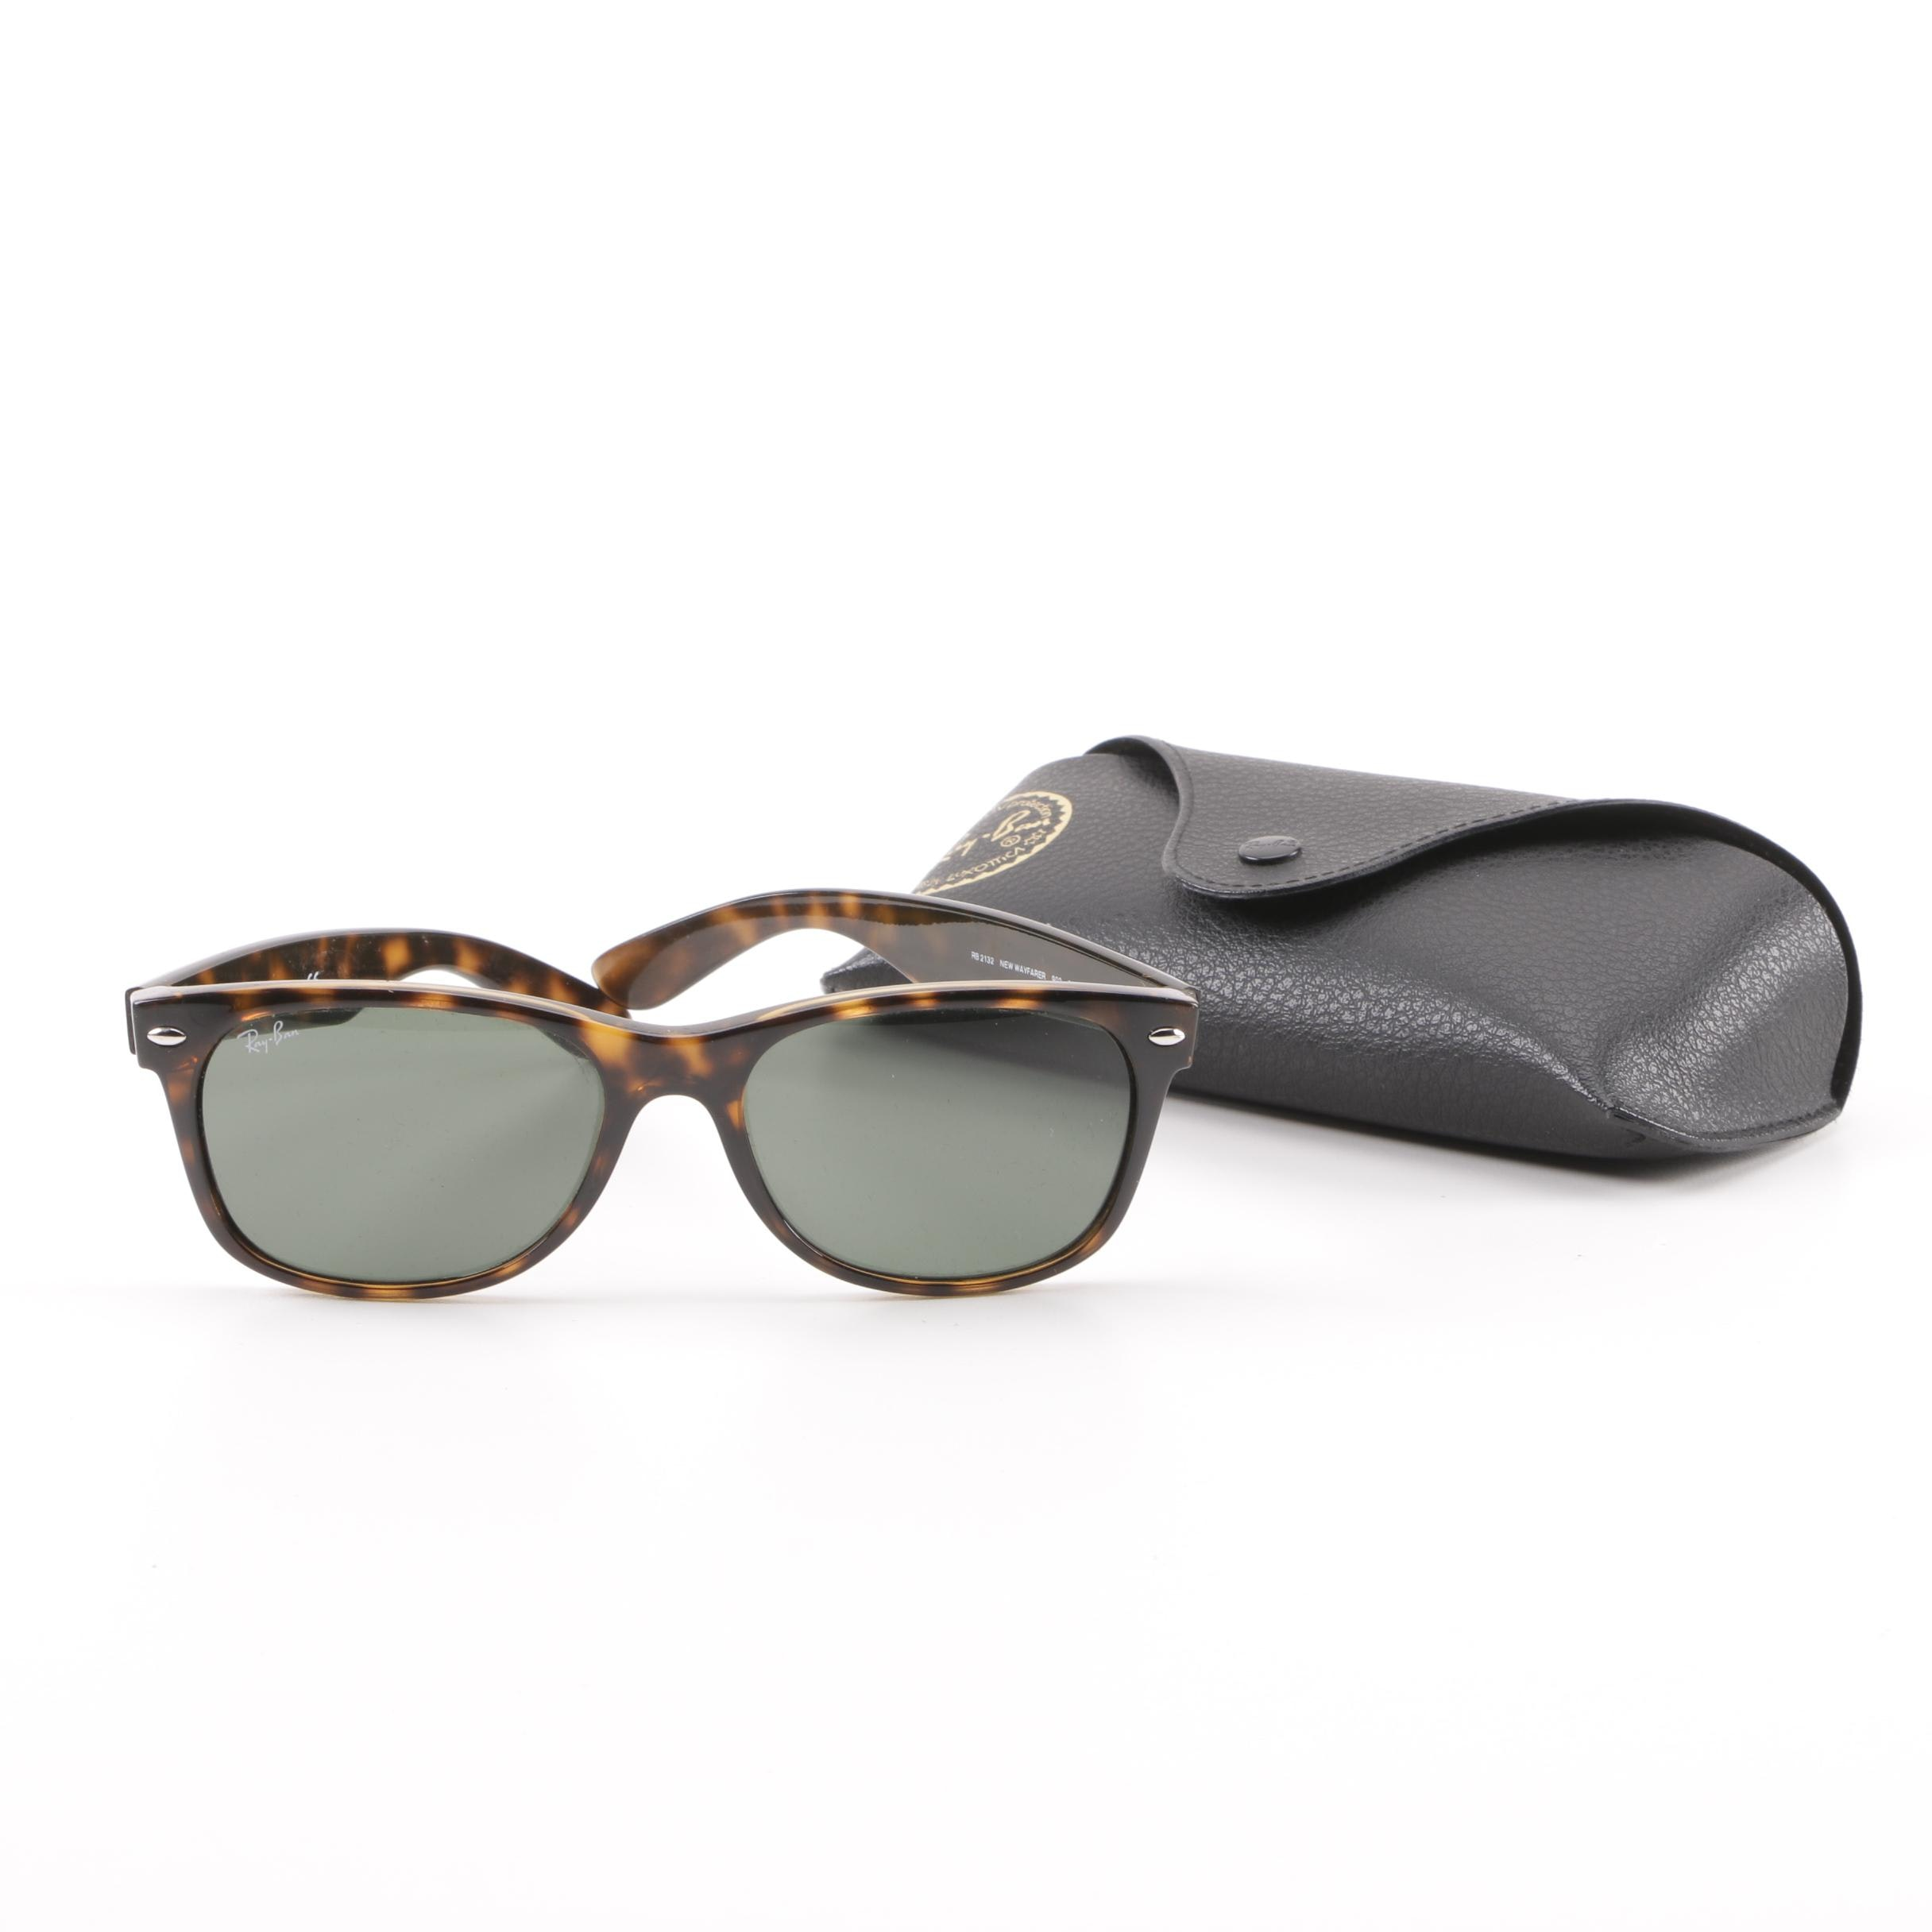 Ray-Ban RB 2132 New Wayfarer Tortoiseshell-Style Sunglasses with Case